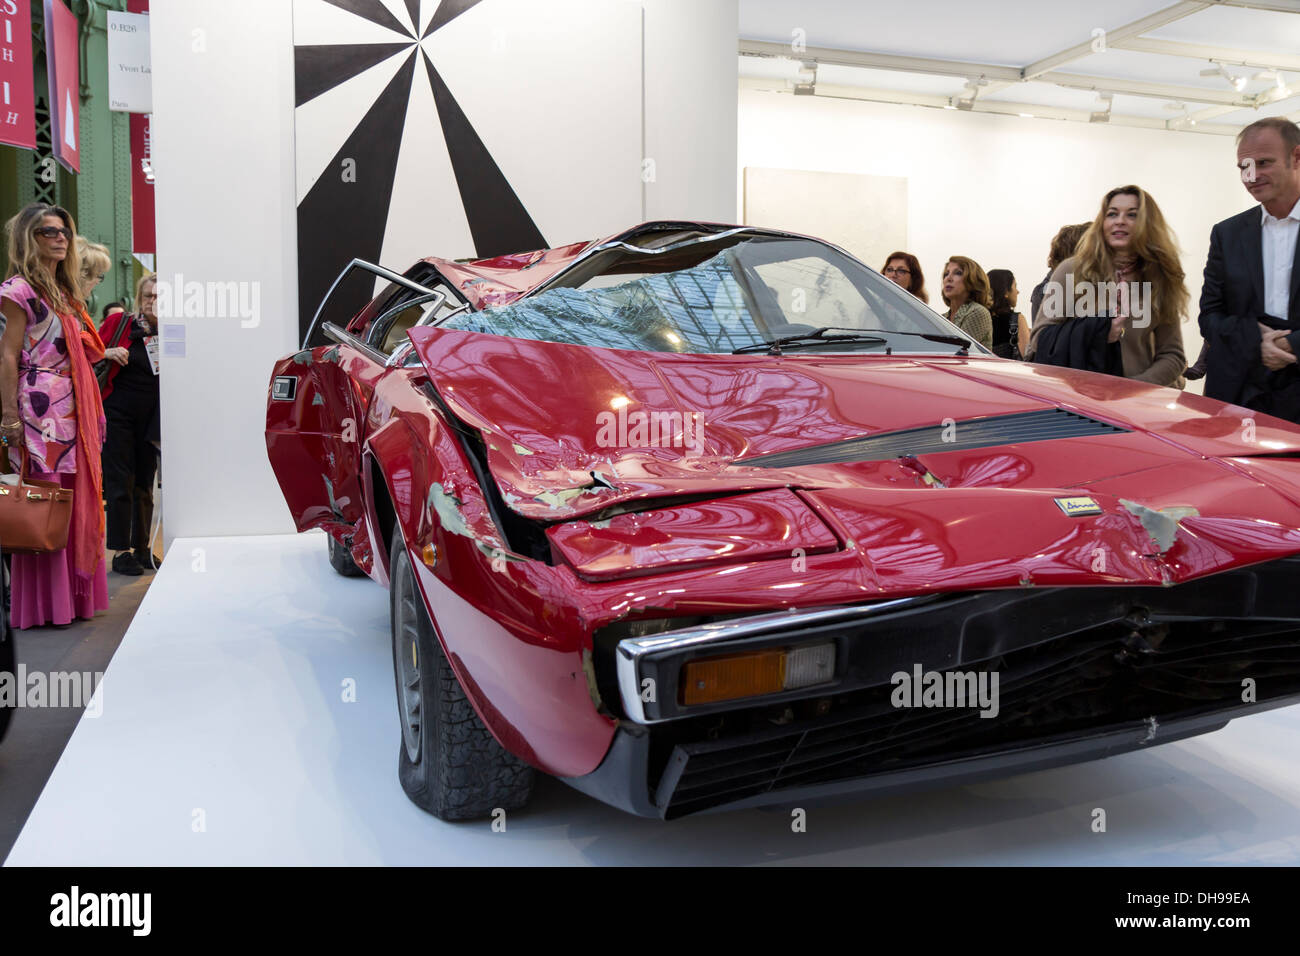 Wrecked Ferrari Dino by Bertrand Lavier sold for 250.000$ at the opening of the Fiac 2013 (contemporary art fair) in Paris - Stock Image